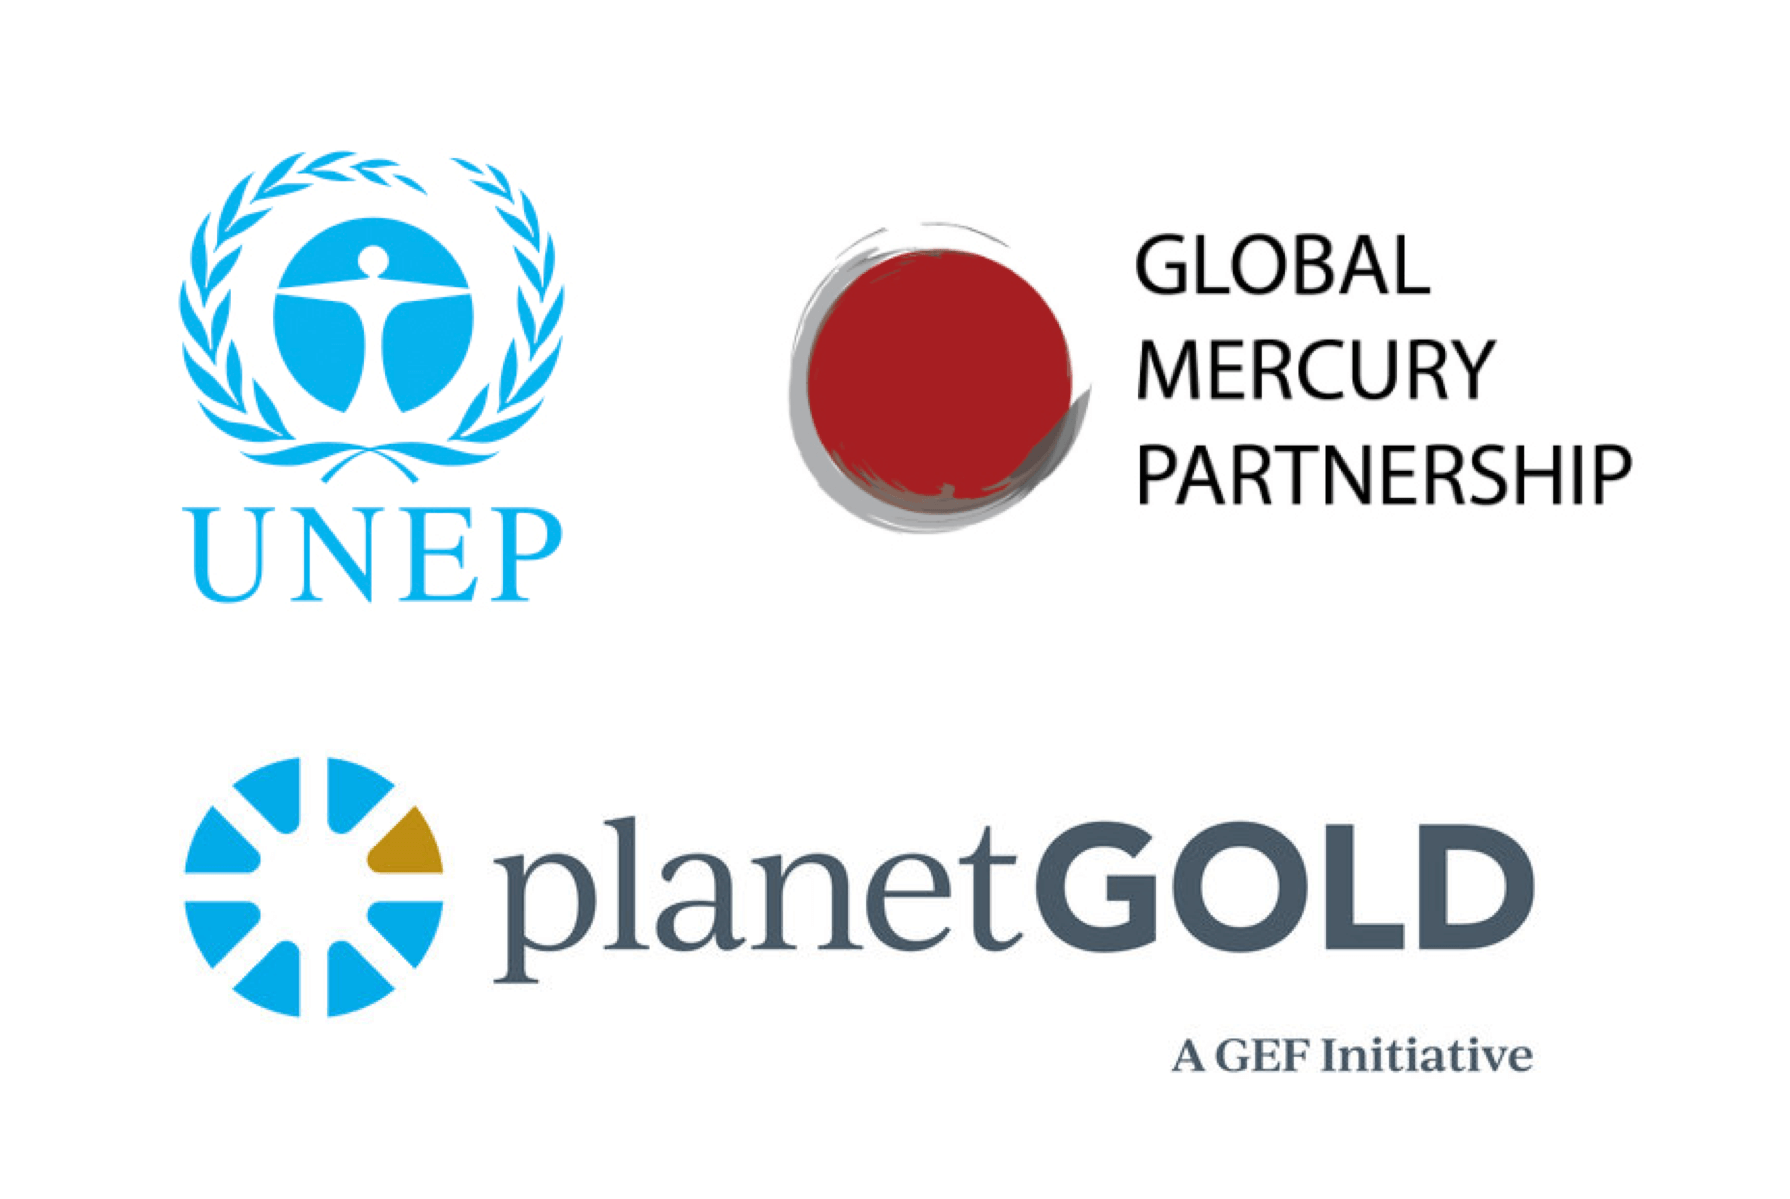 Partnering with the United Nations